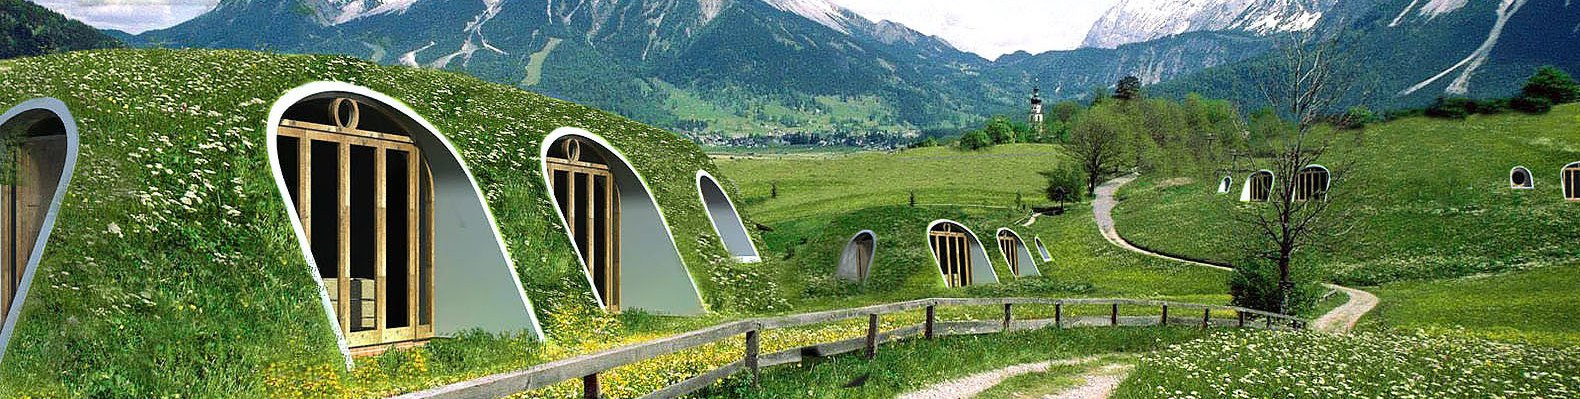 A Green Roofed Hobbit Home Anyone Can Build In Just Days